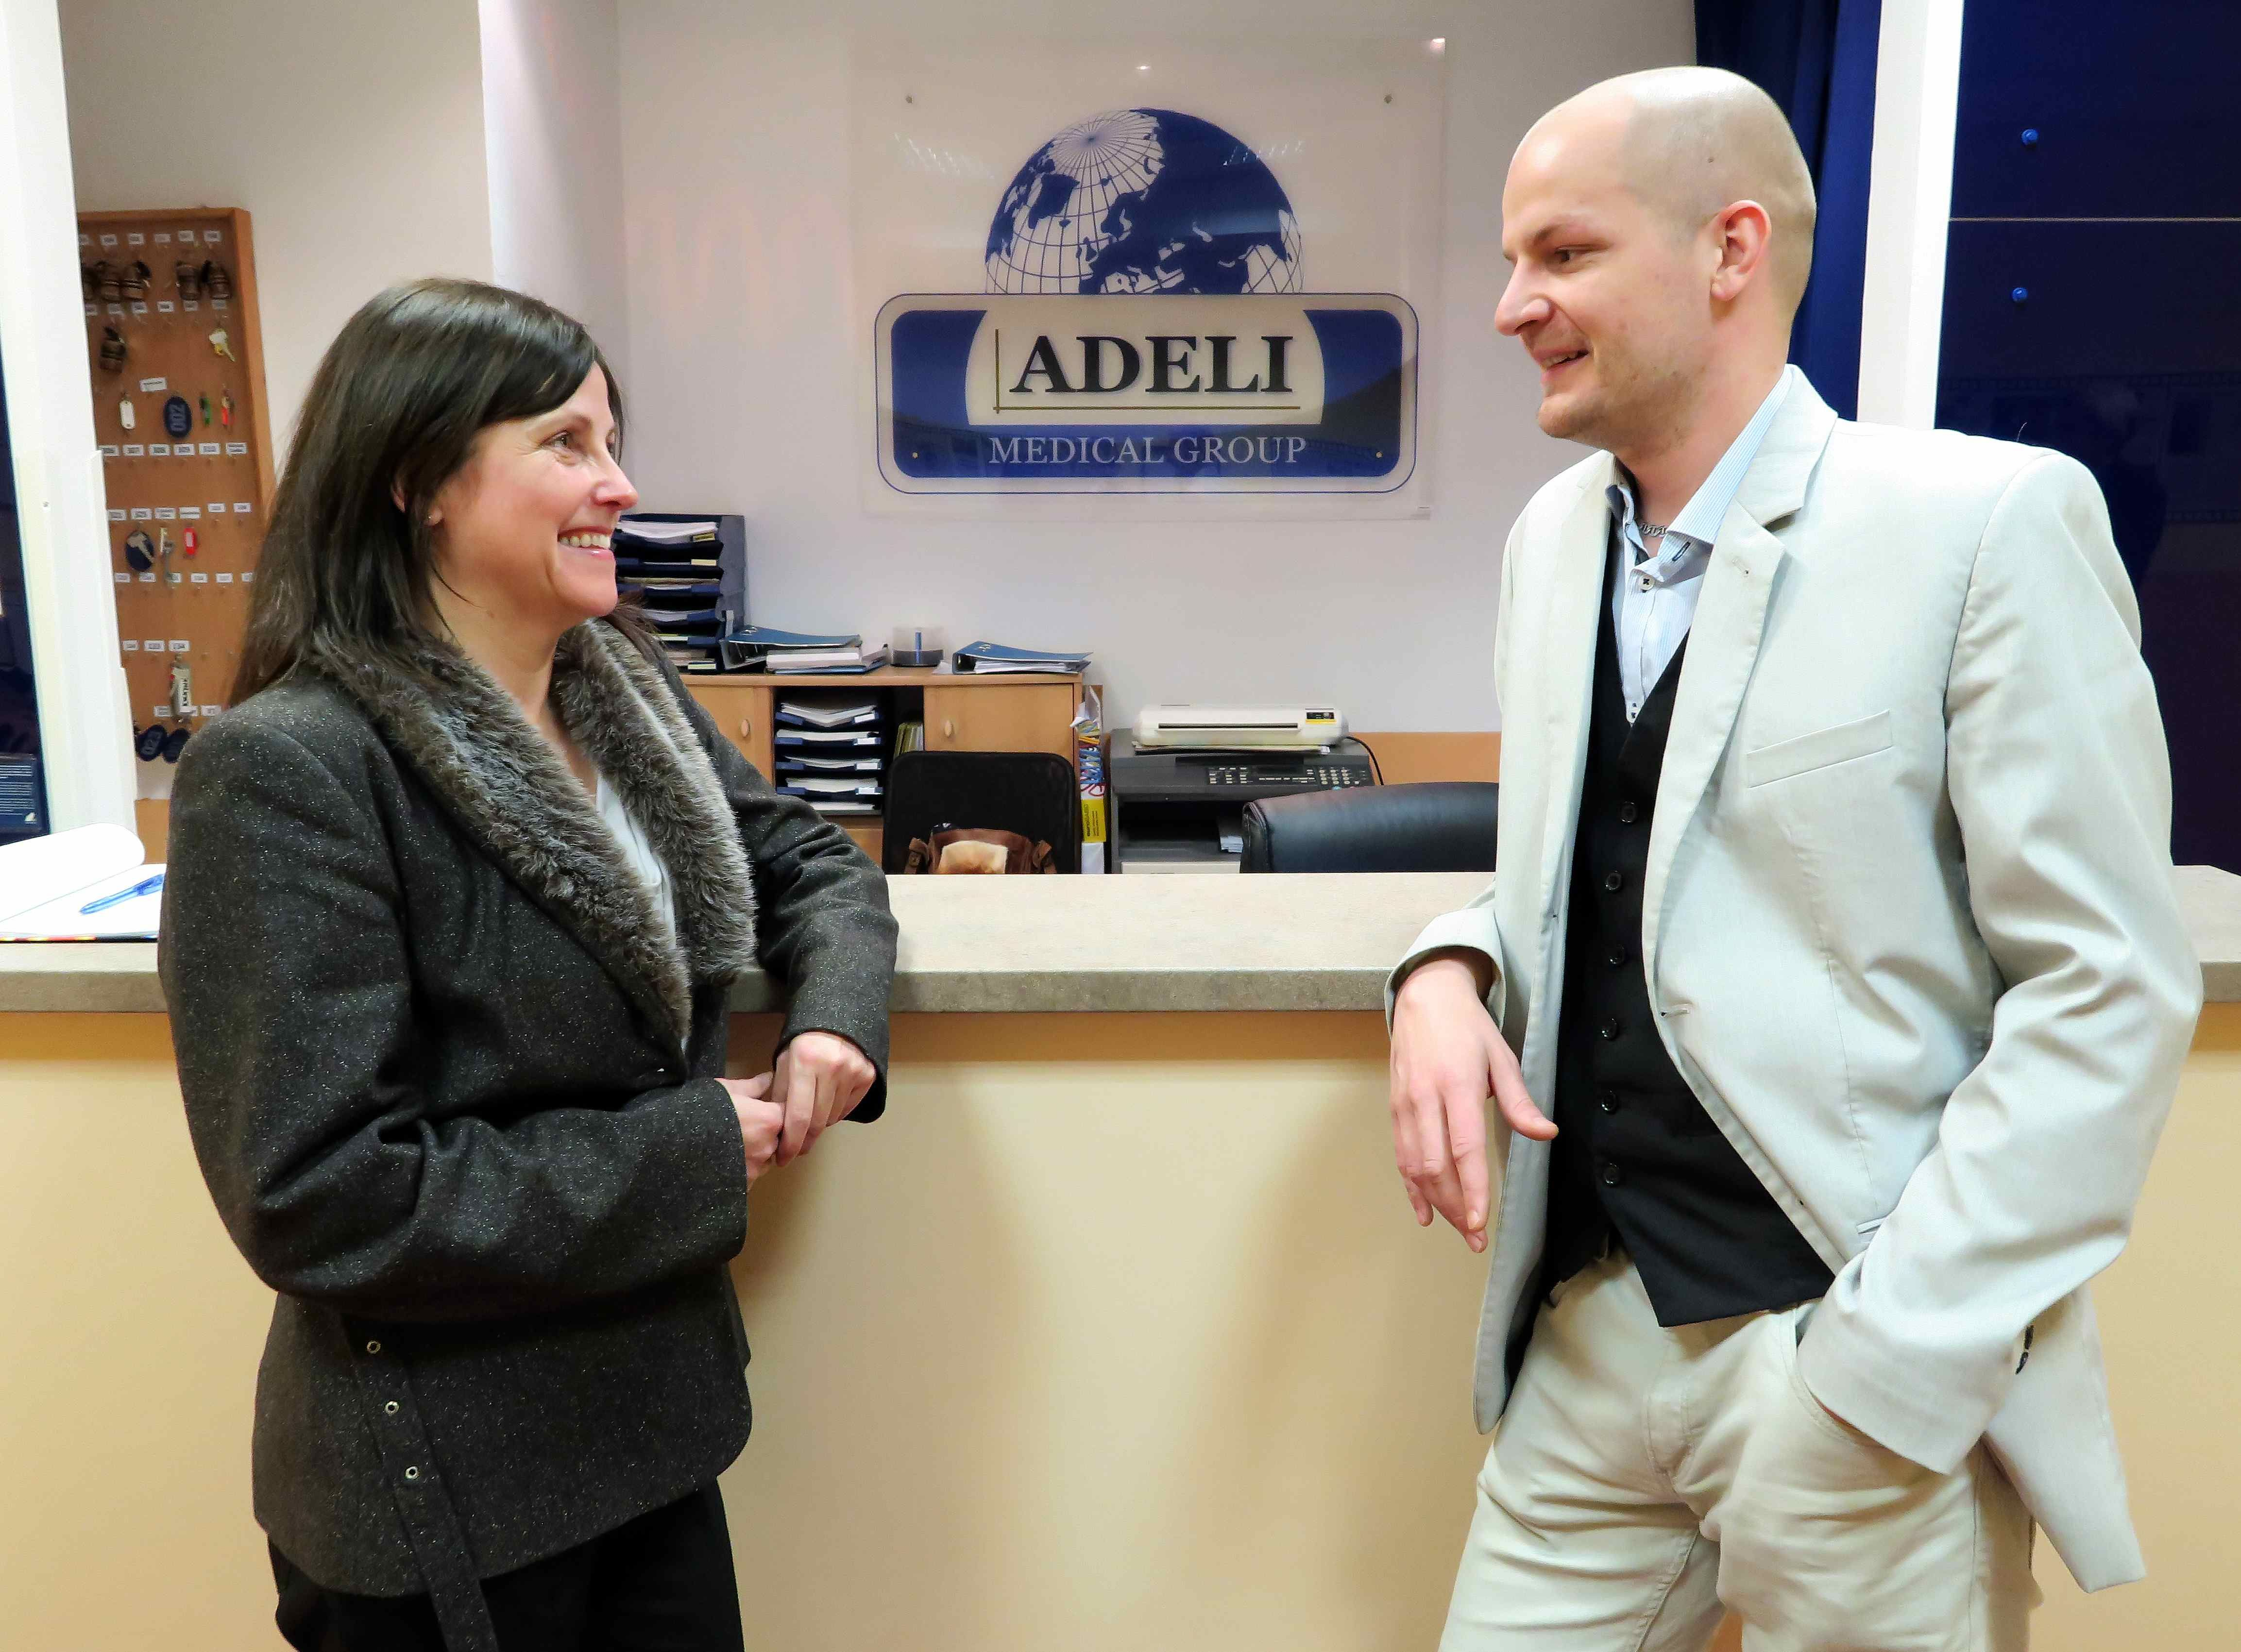 The Adeli Medical Center in partnership Just4Children and